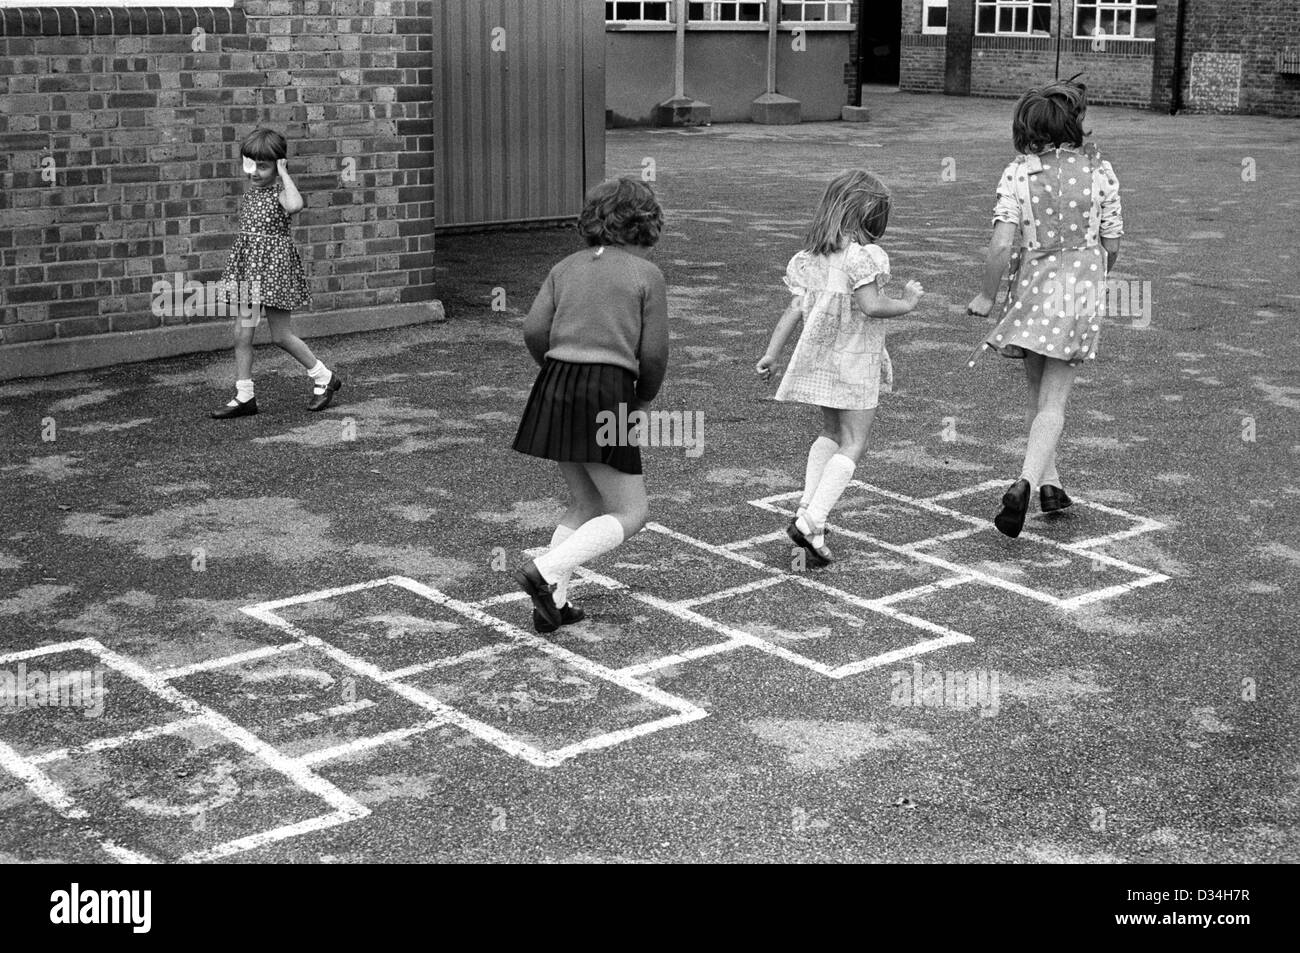 Primary school playground Hopscotch hop scotch. Girls playing together. South London. 1970s Britain.  HOMER SYKES - Stock Image